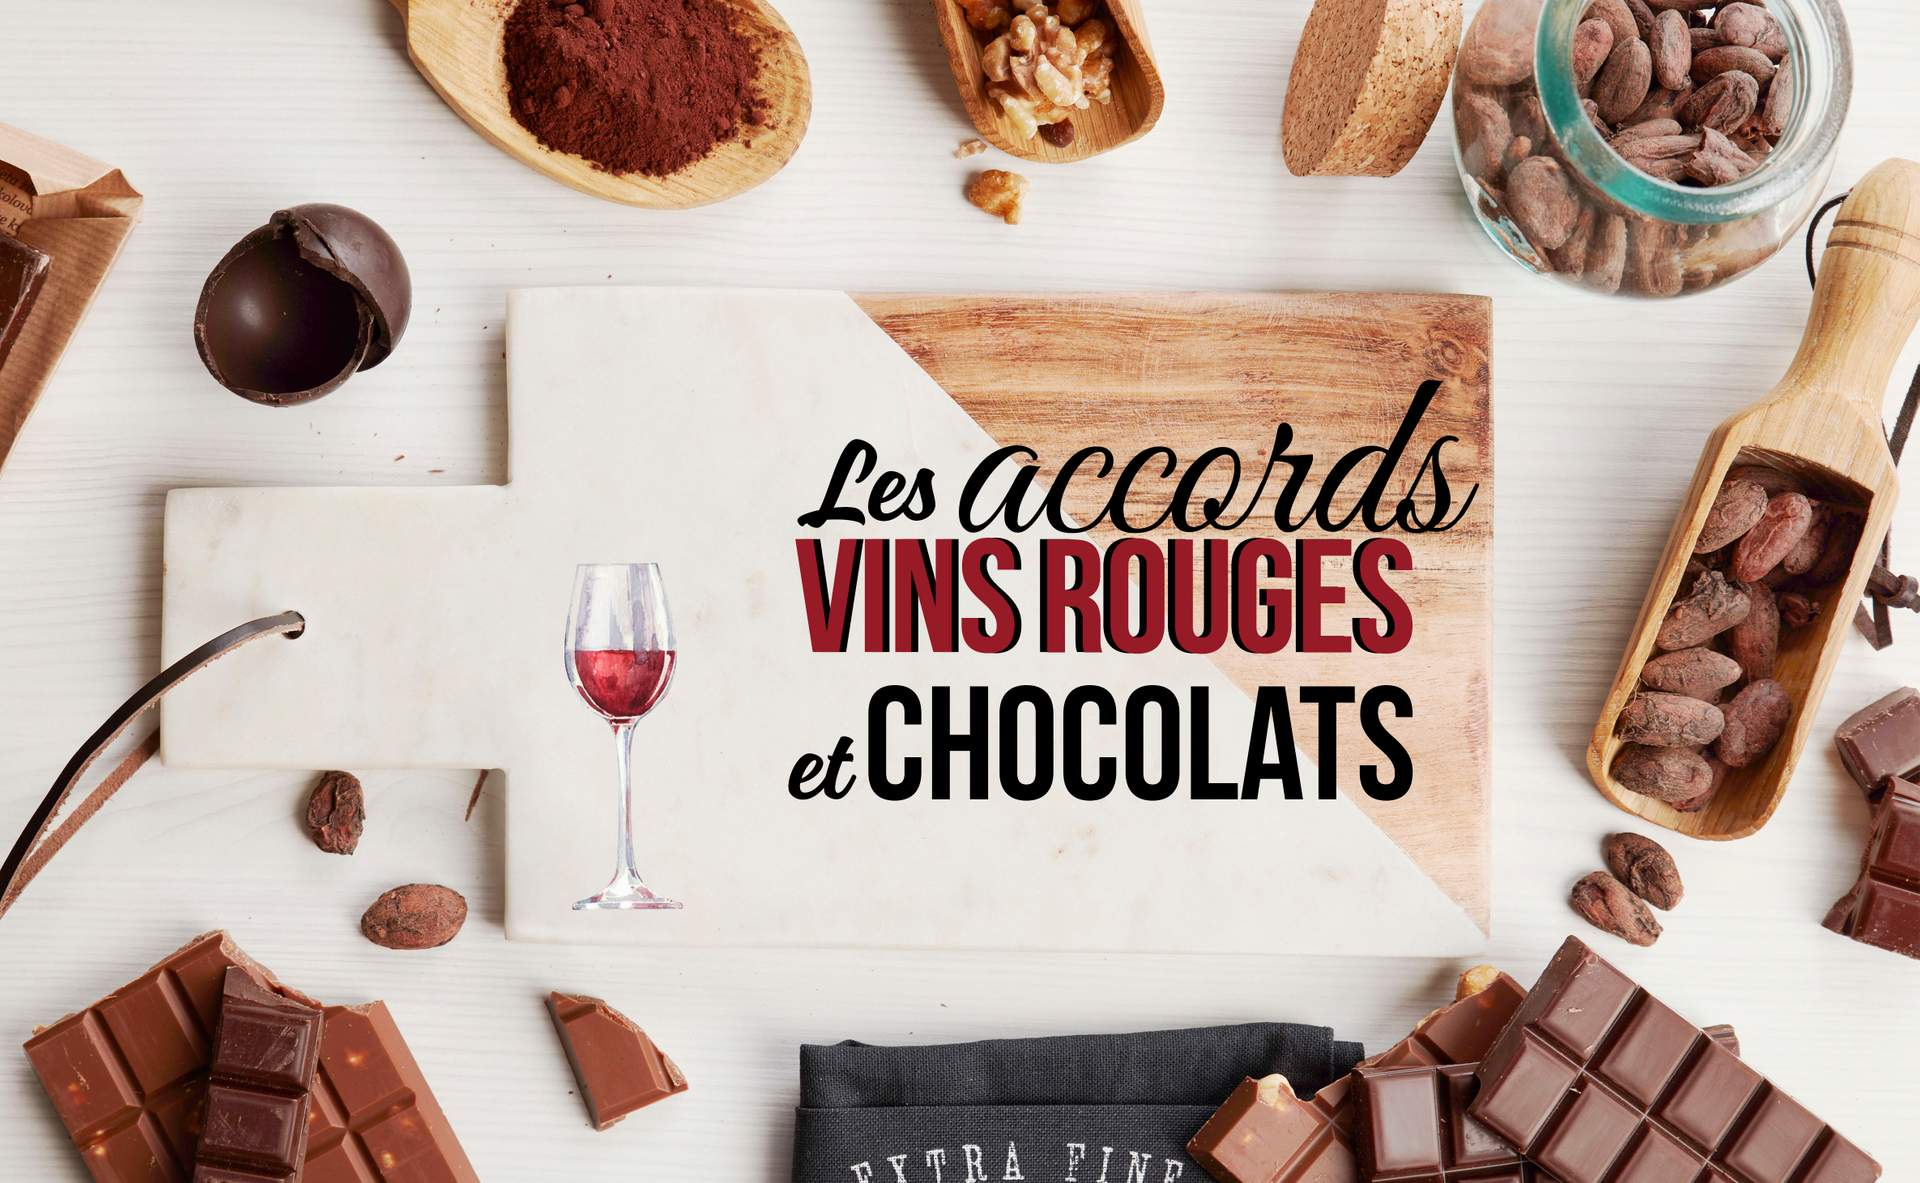 La magie des accords vin rouge et chocolat